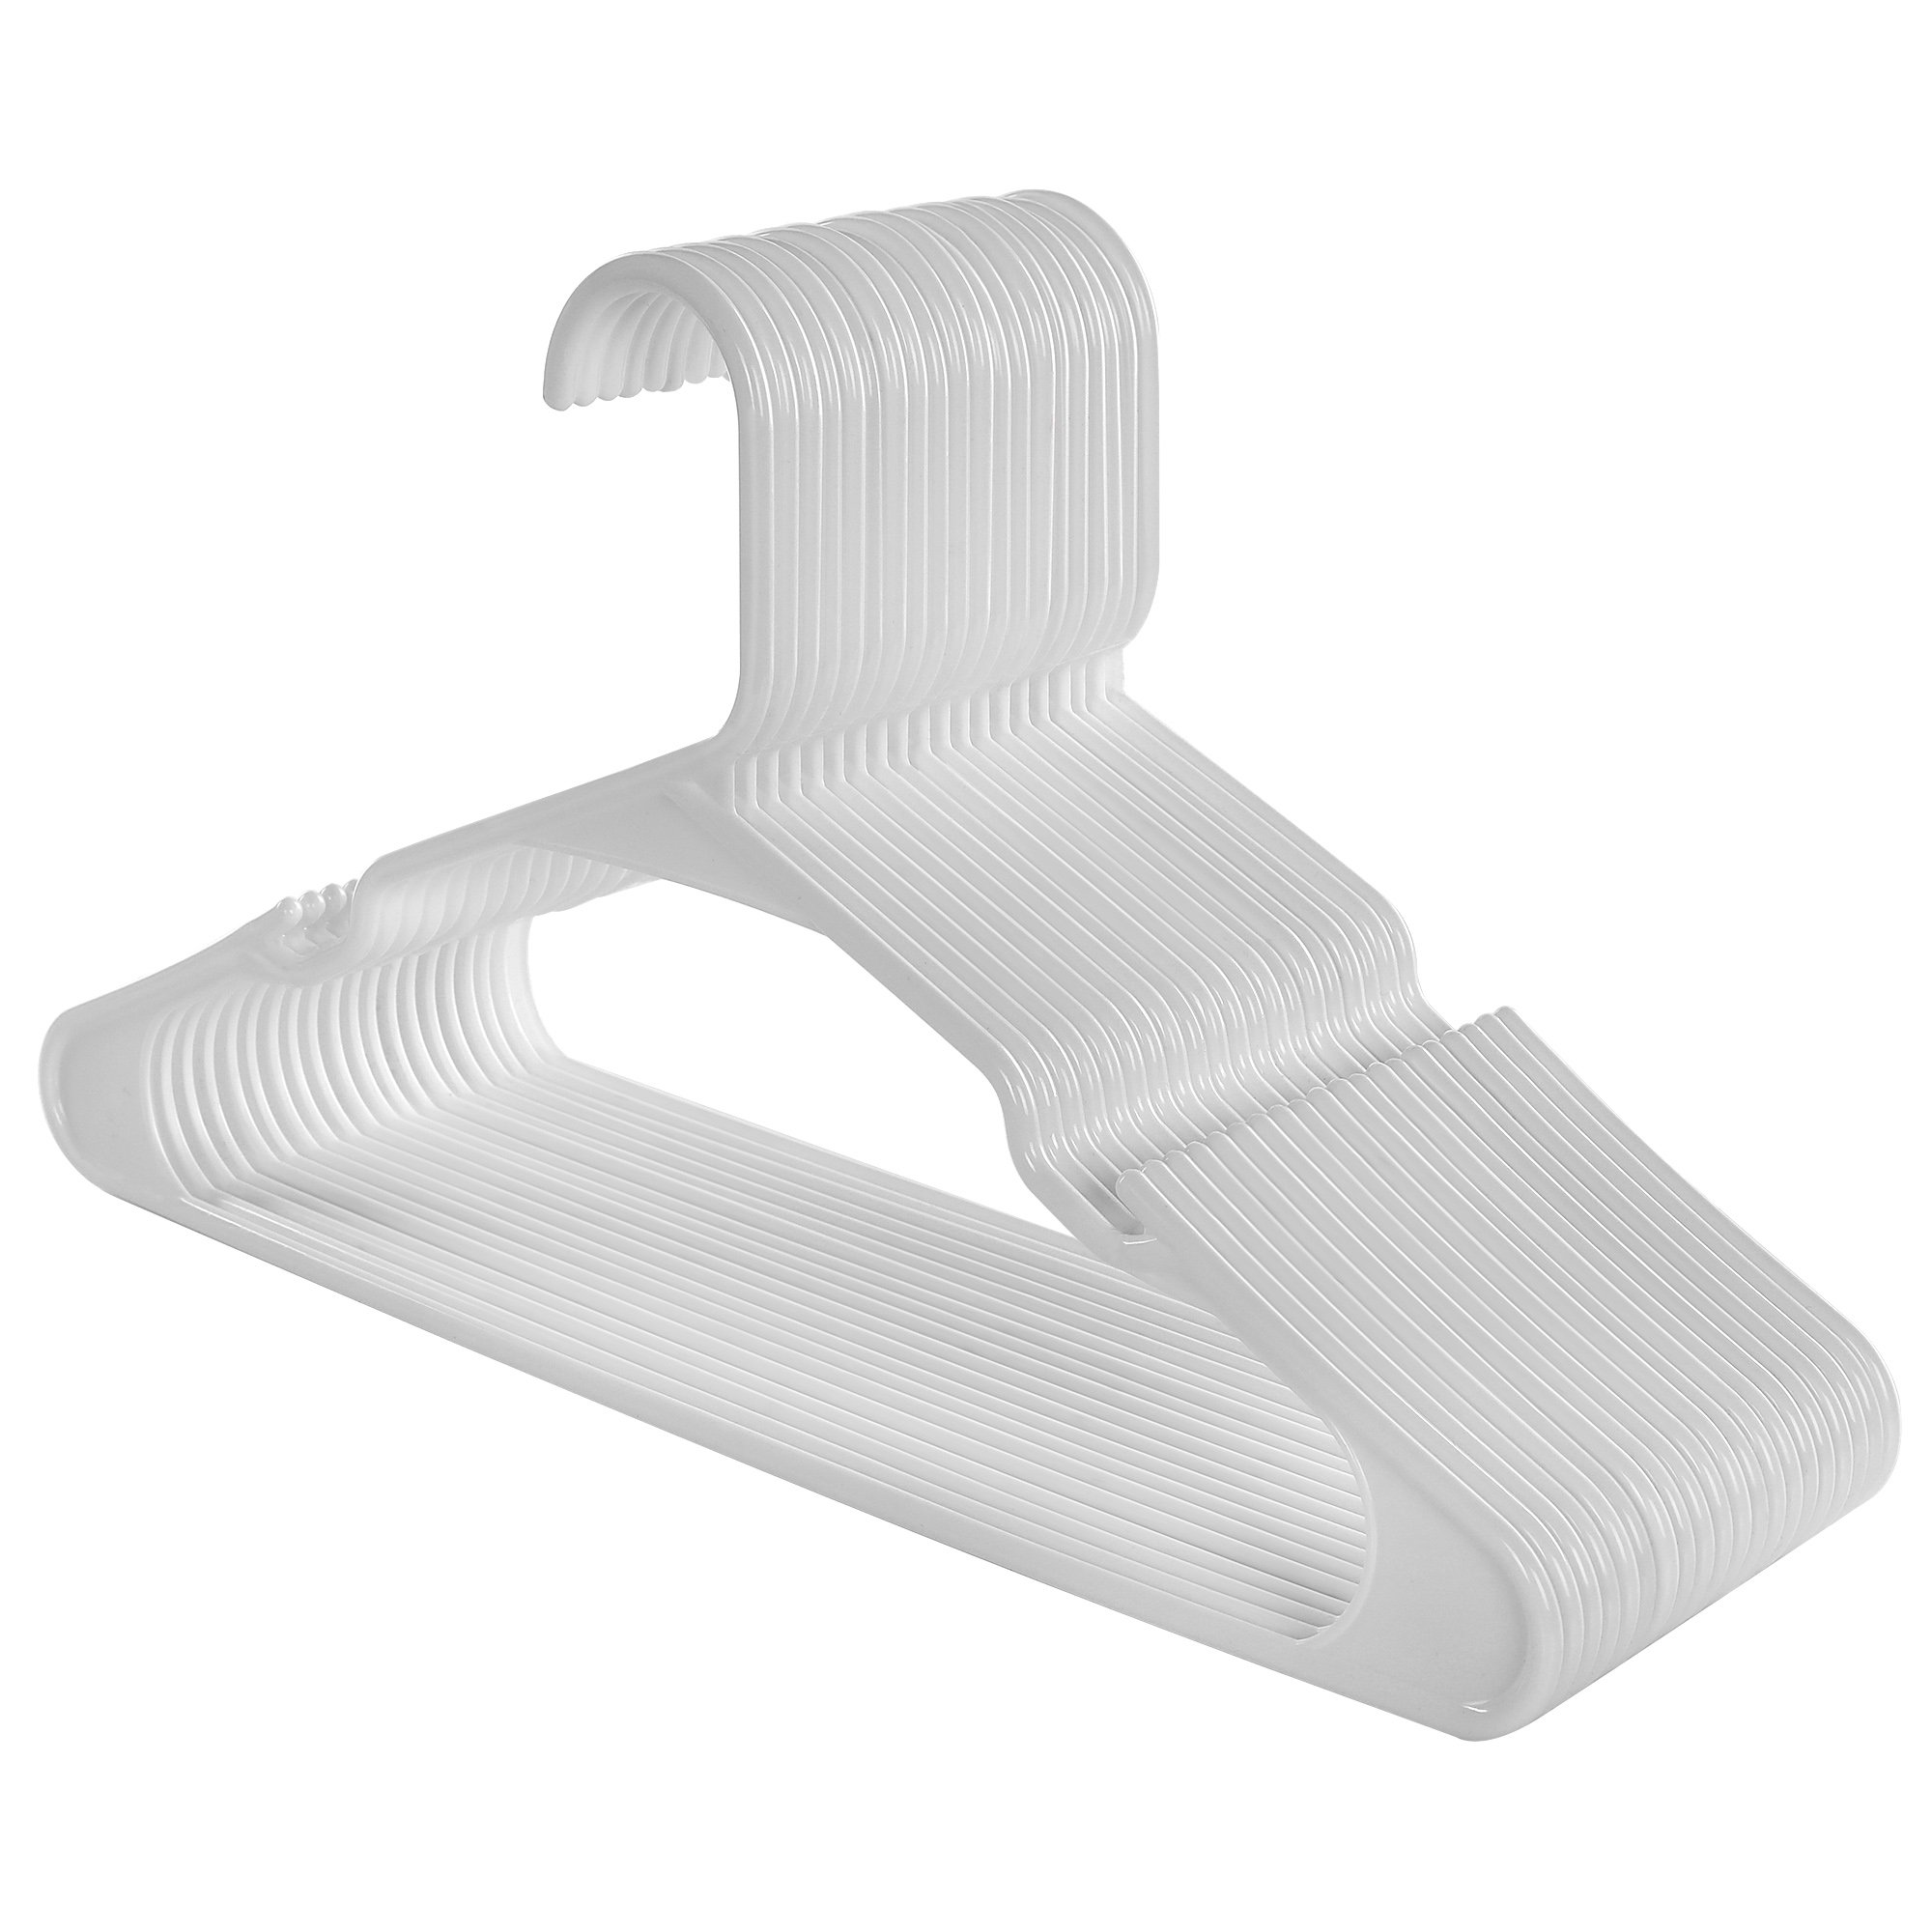 SONGMICS Clothes Hangers Plastic 50 Pack -Easy and Convenient with Widened Non Slip Grooves and Reinforced Ends (White, 50)